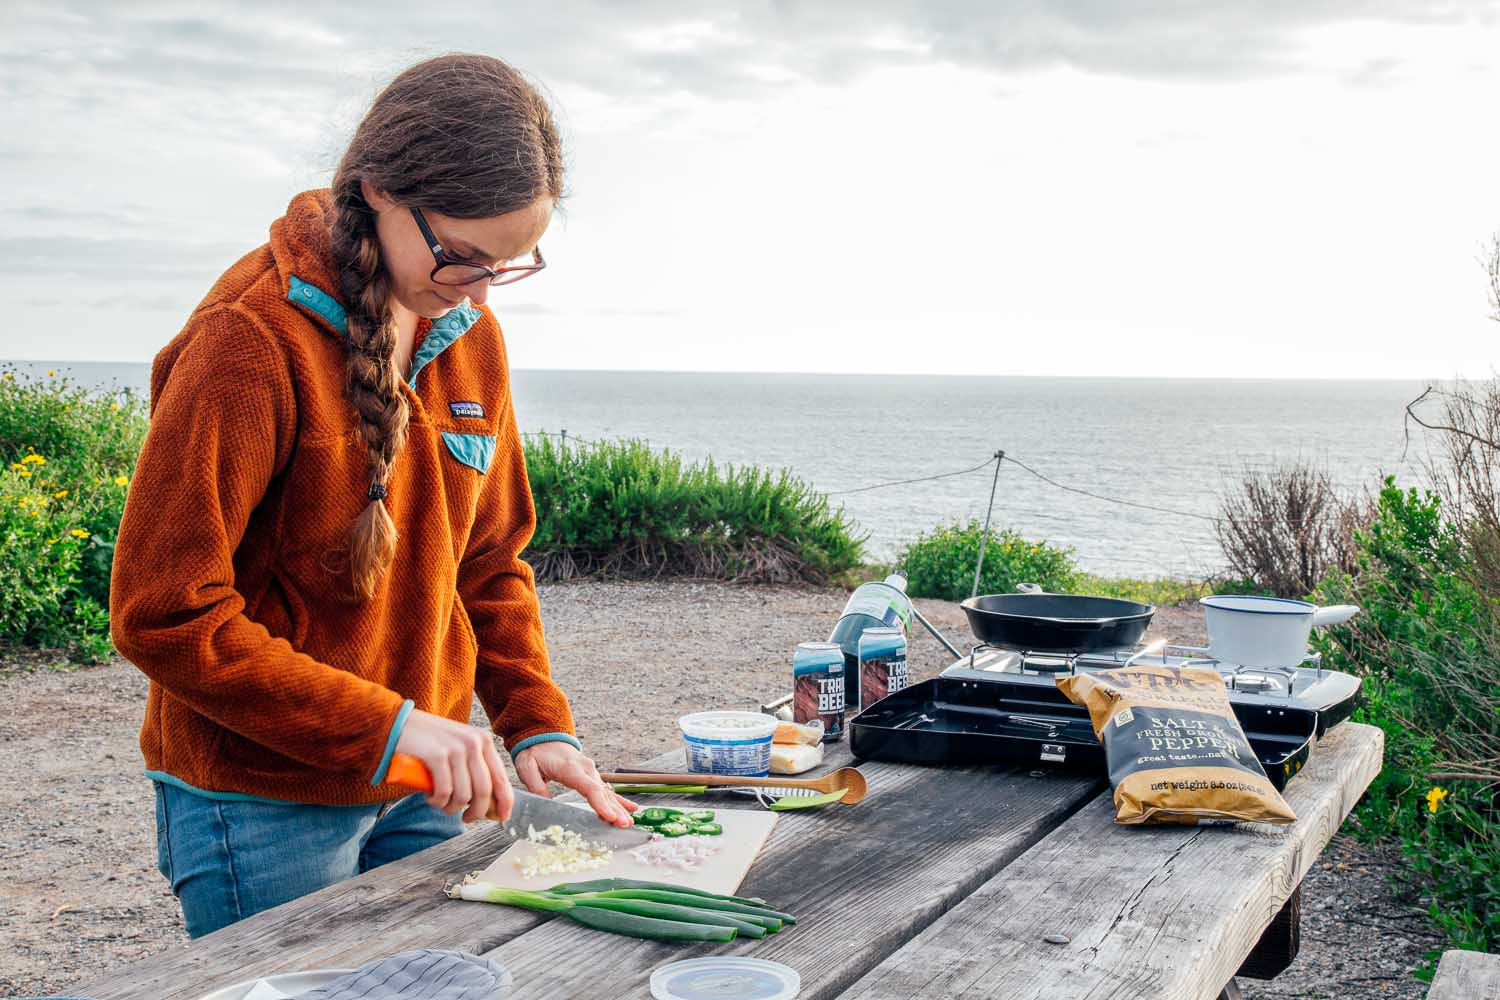 Woman chopping jalapeños at a campsite. A camping stove and other nacho ingredients are visible in the background.